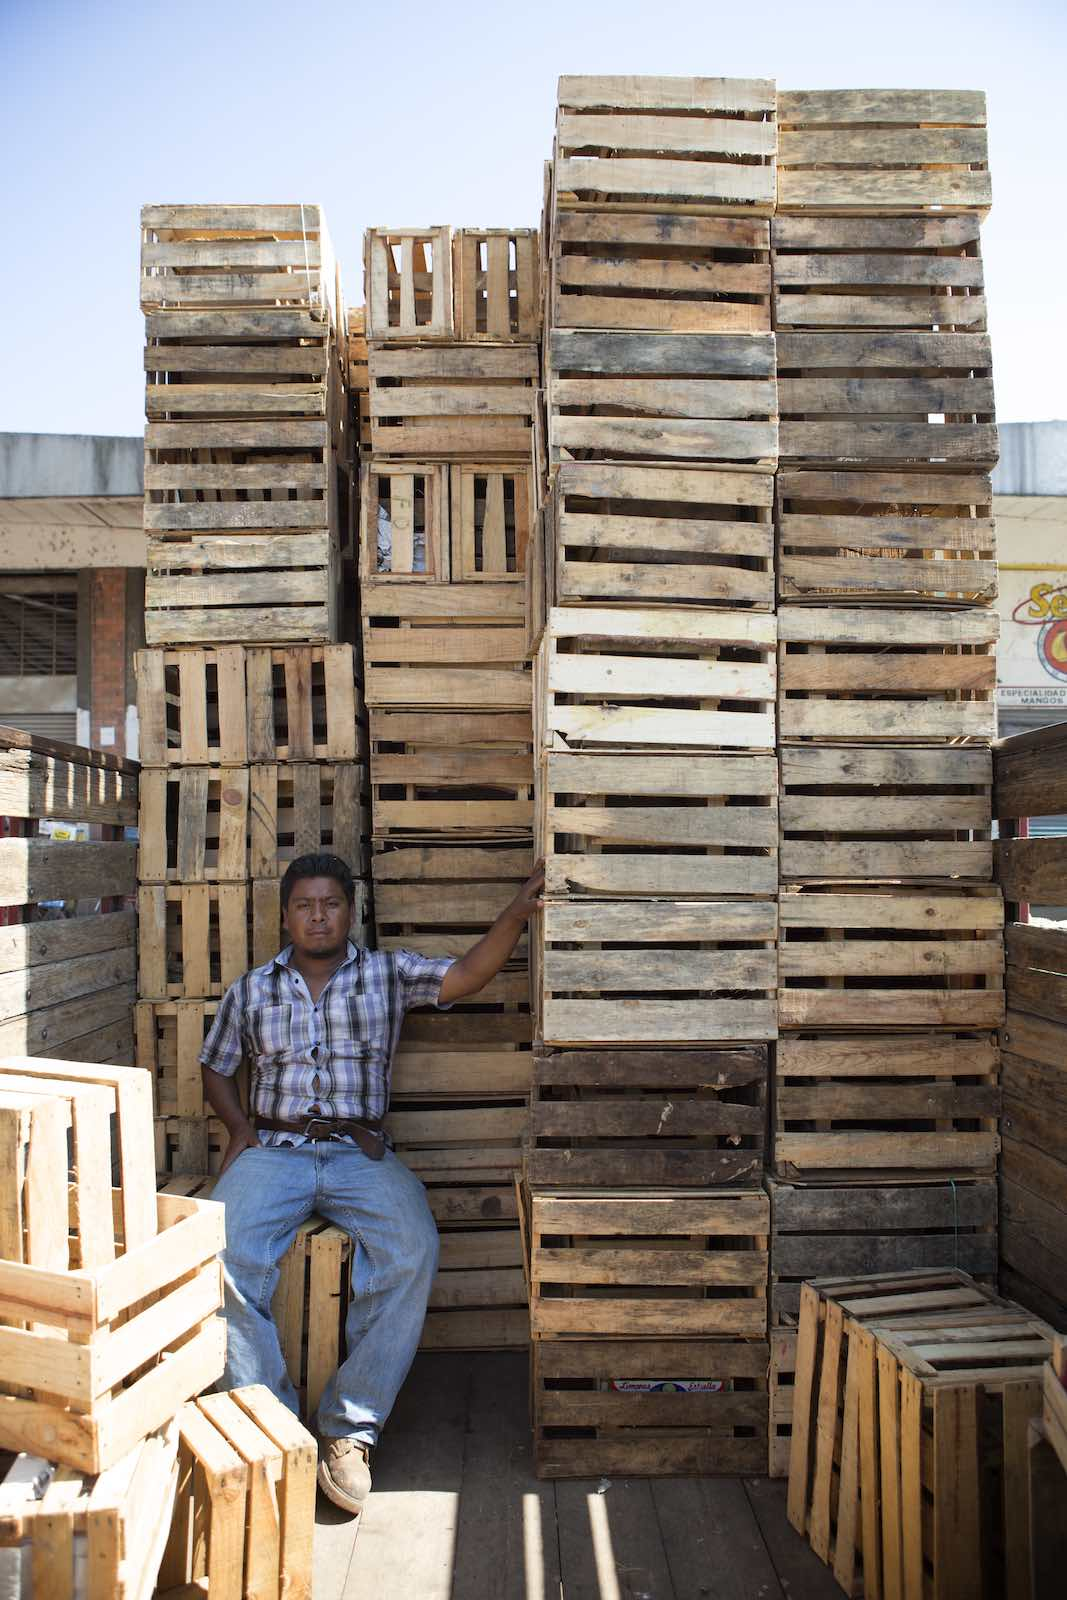 Man sitting in the shade of the stacks of empty crates.